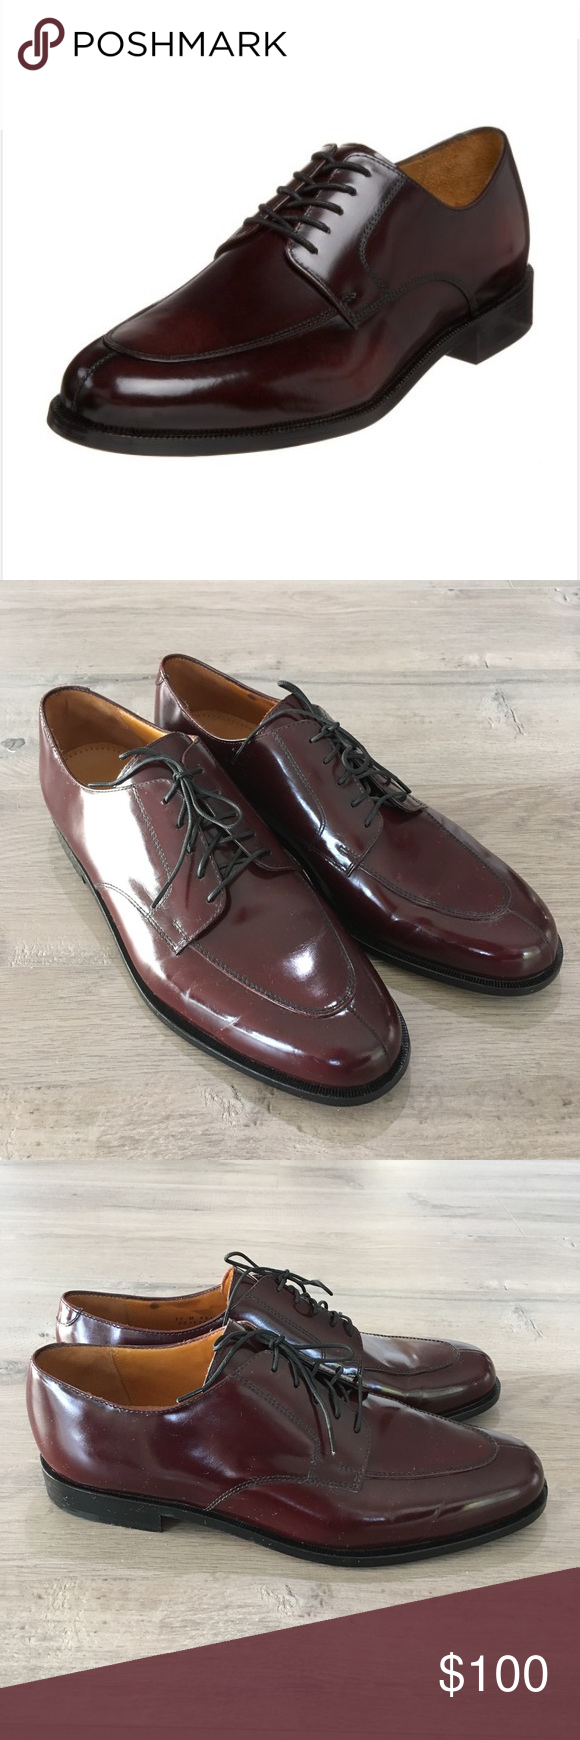 COLE HAAN ~ carter grand burgundy split toe oxford